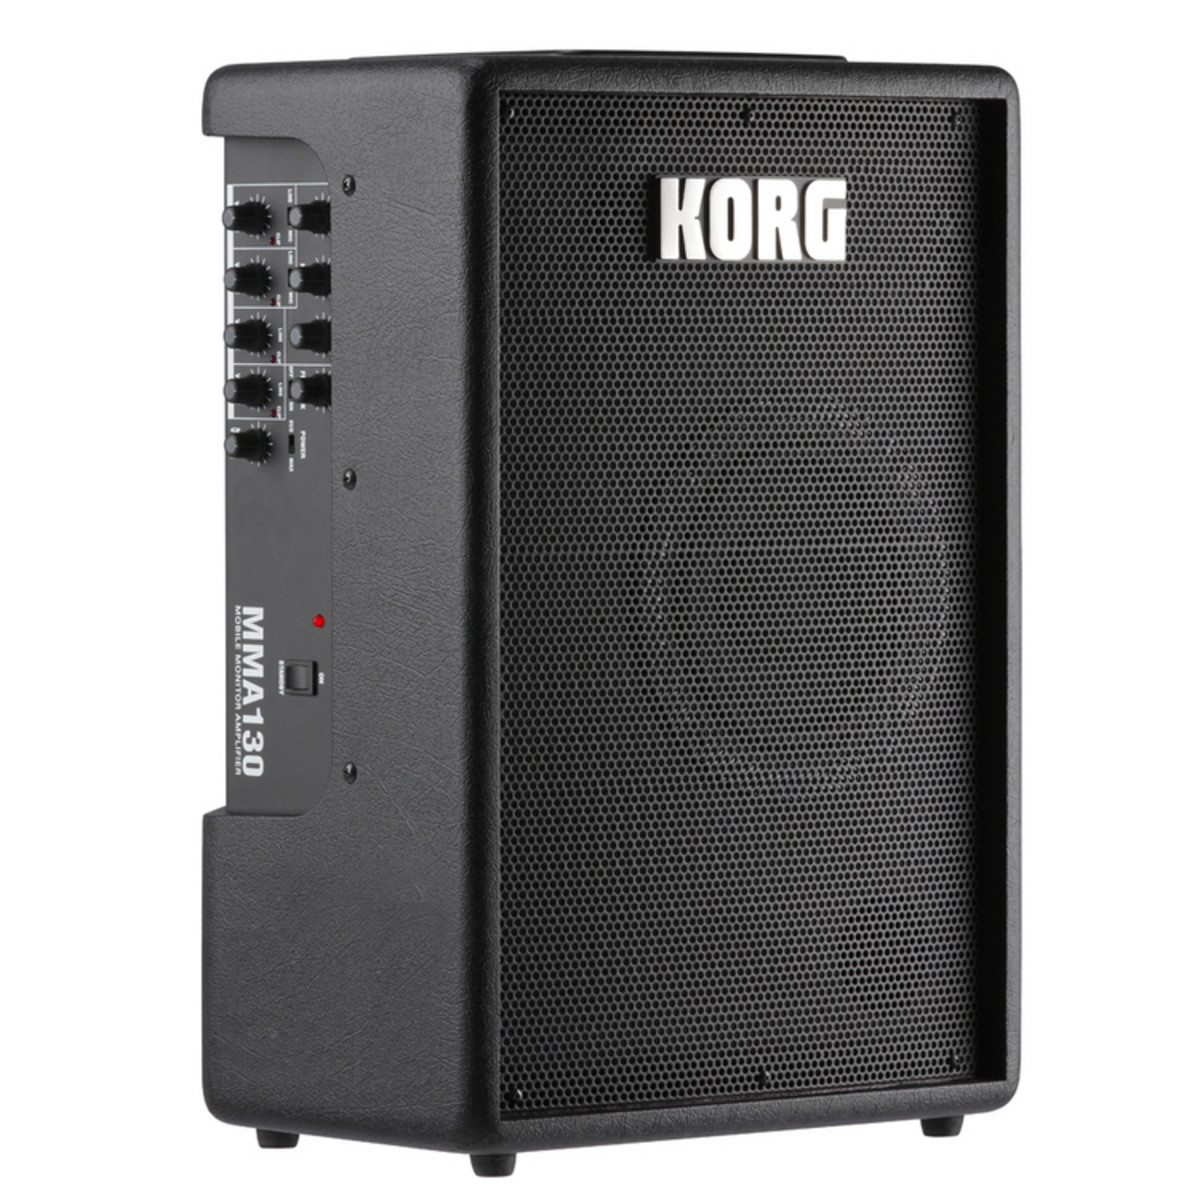 korg mma130 amplificateur moniteur mobile gear4music. Black Bedroom Furniture Sets. Home Design Ideas